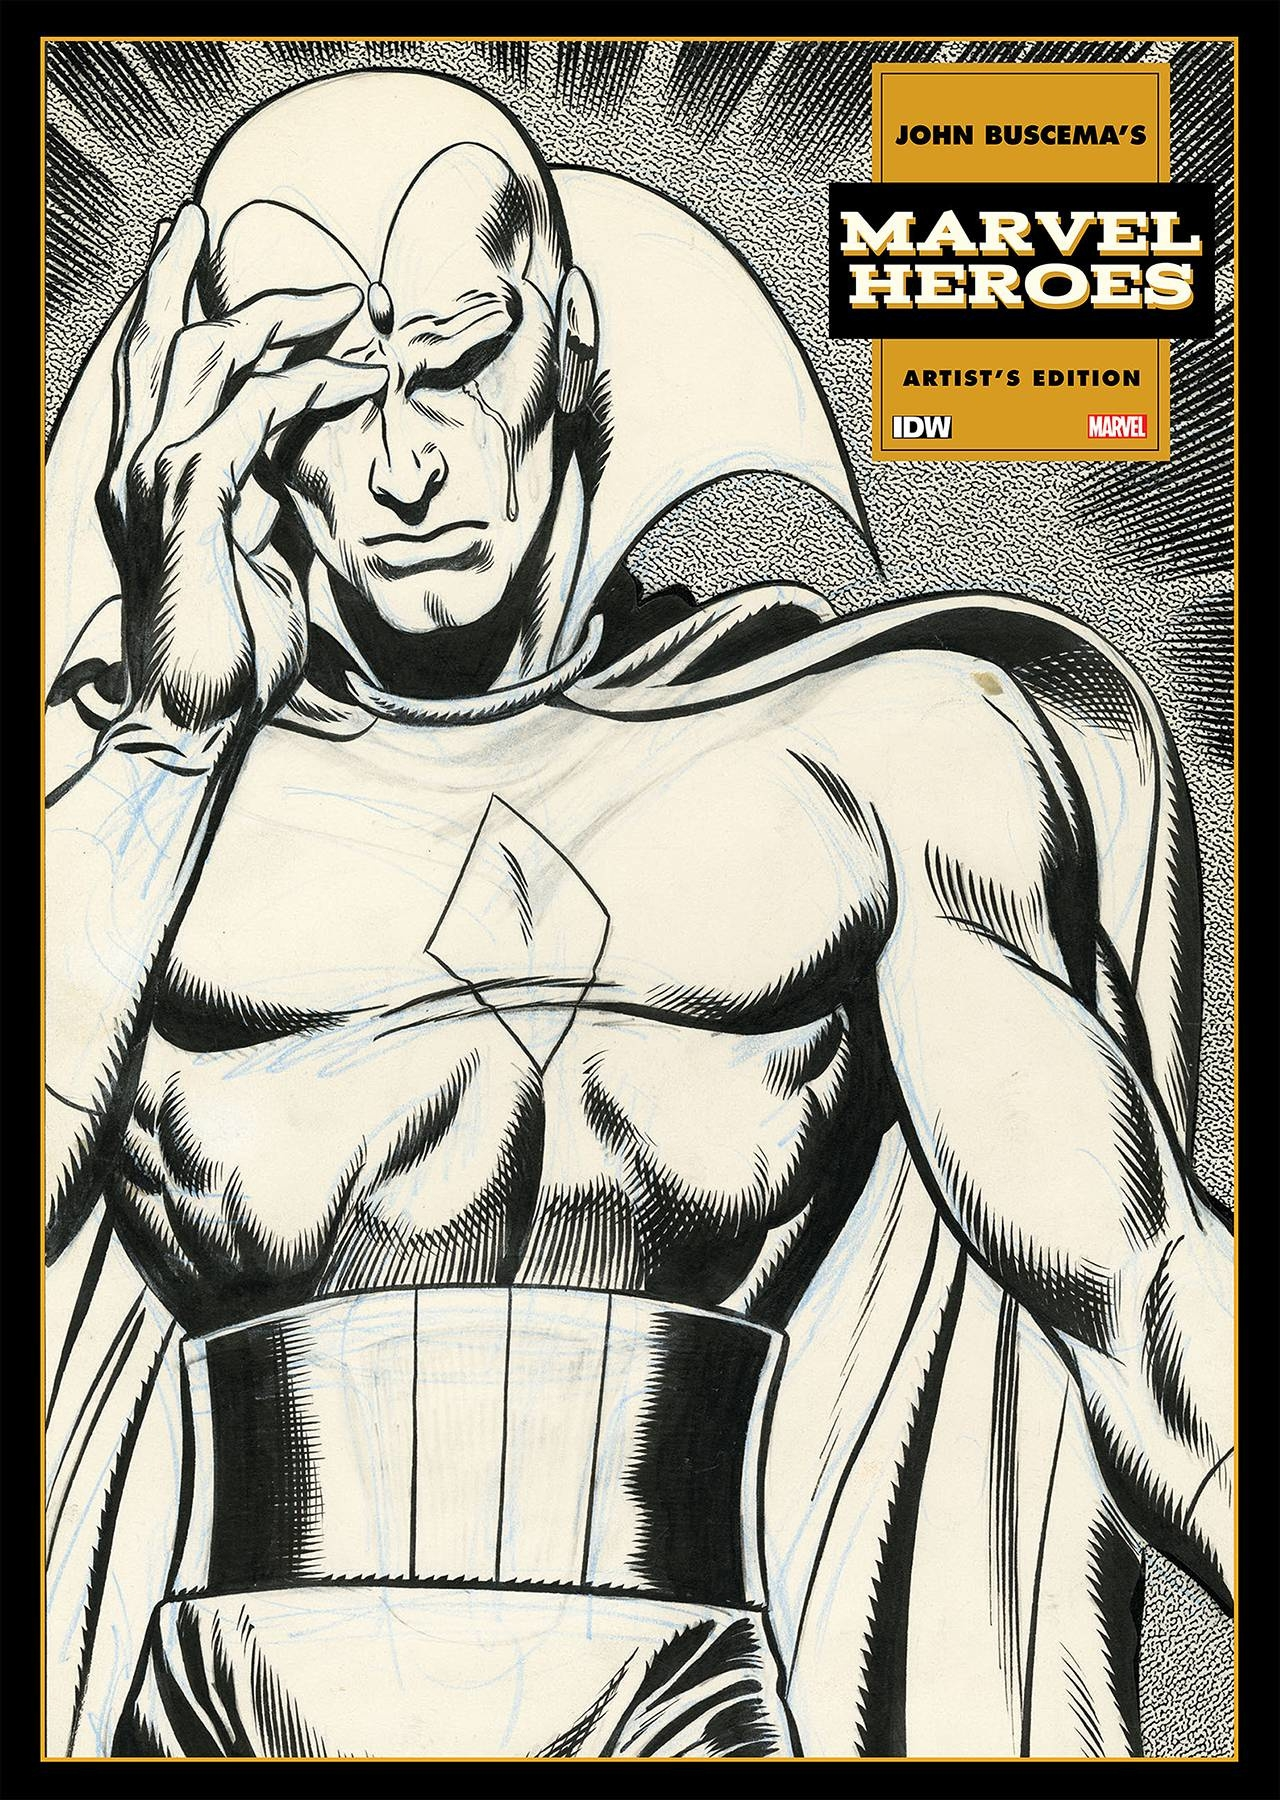 John Buscema's Marvel Heroes Artist's Edition cover prelim